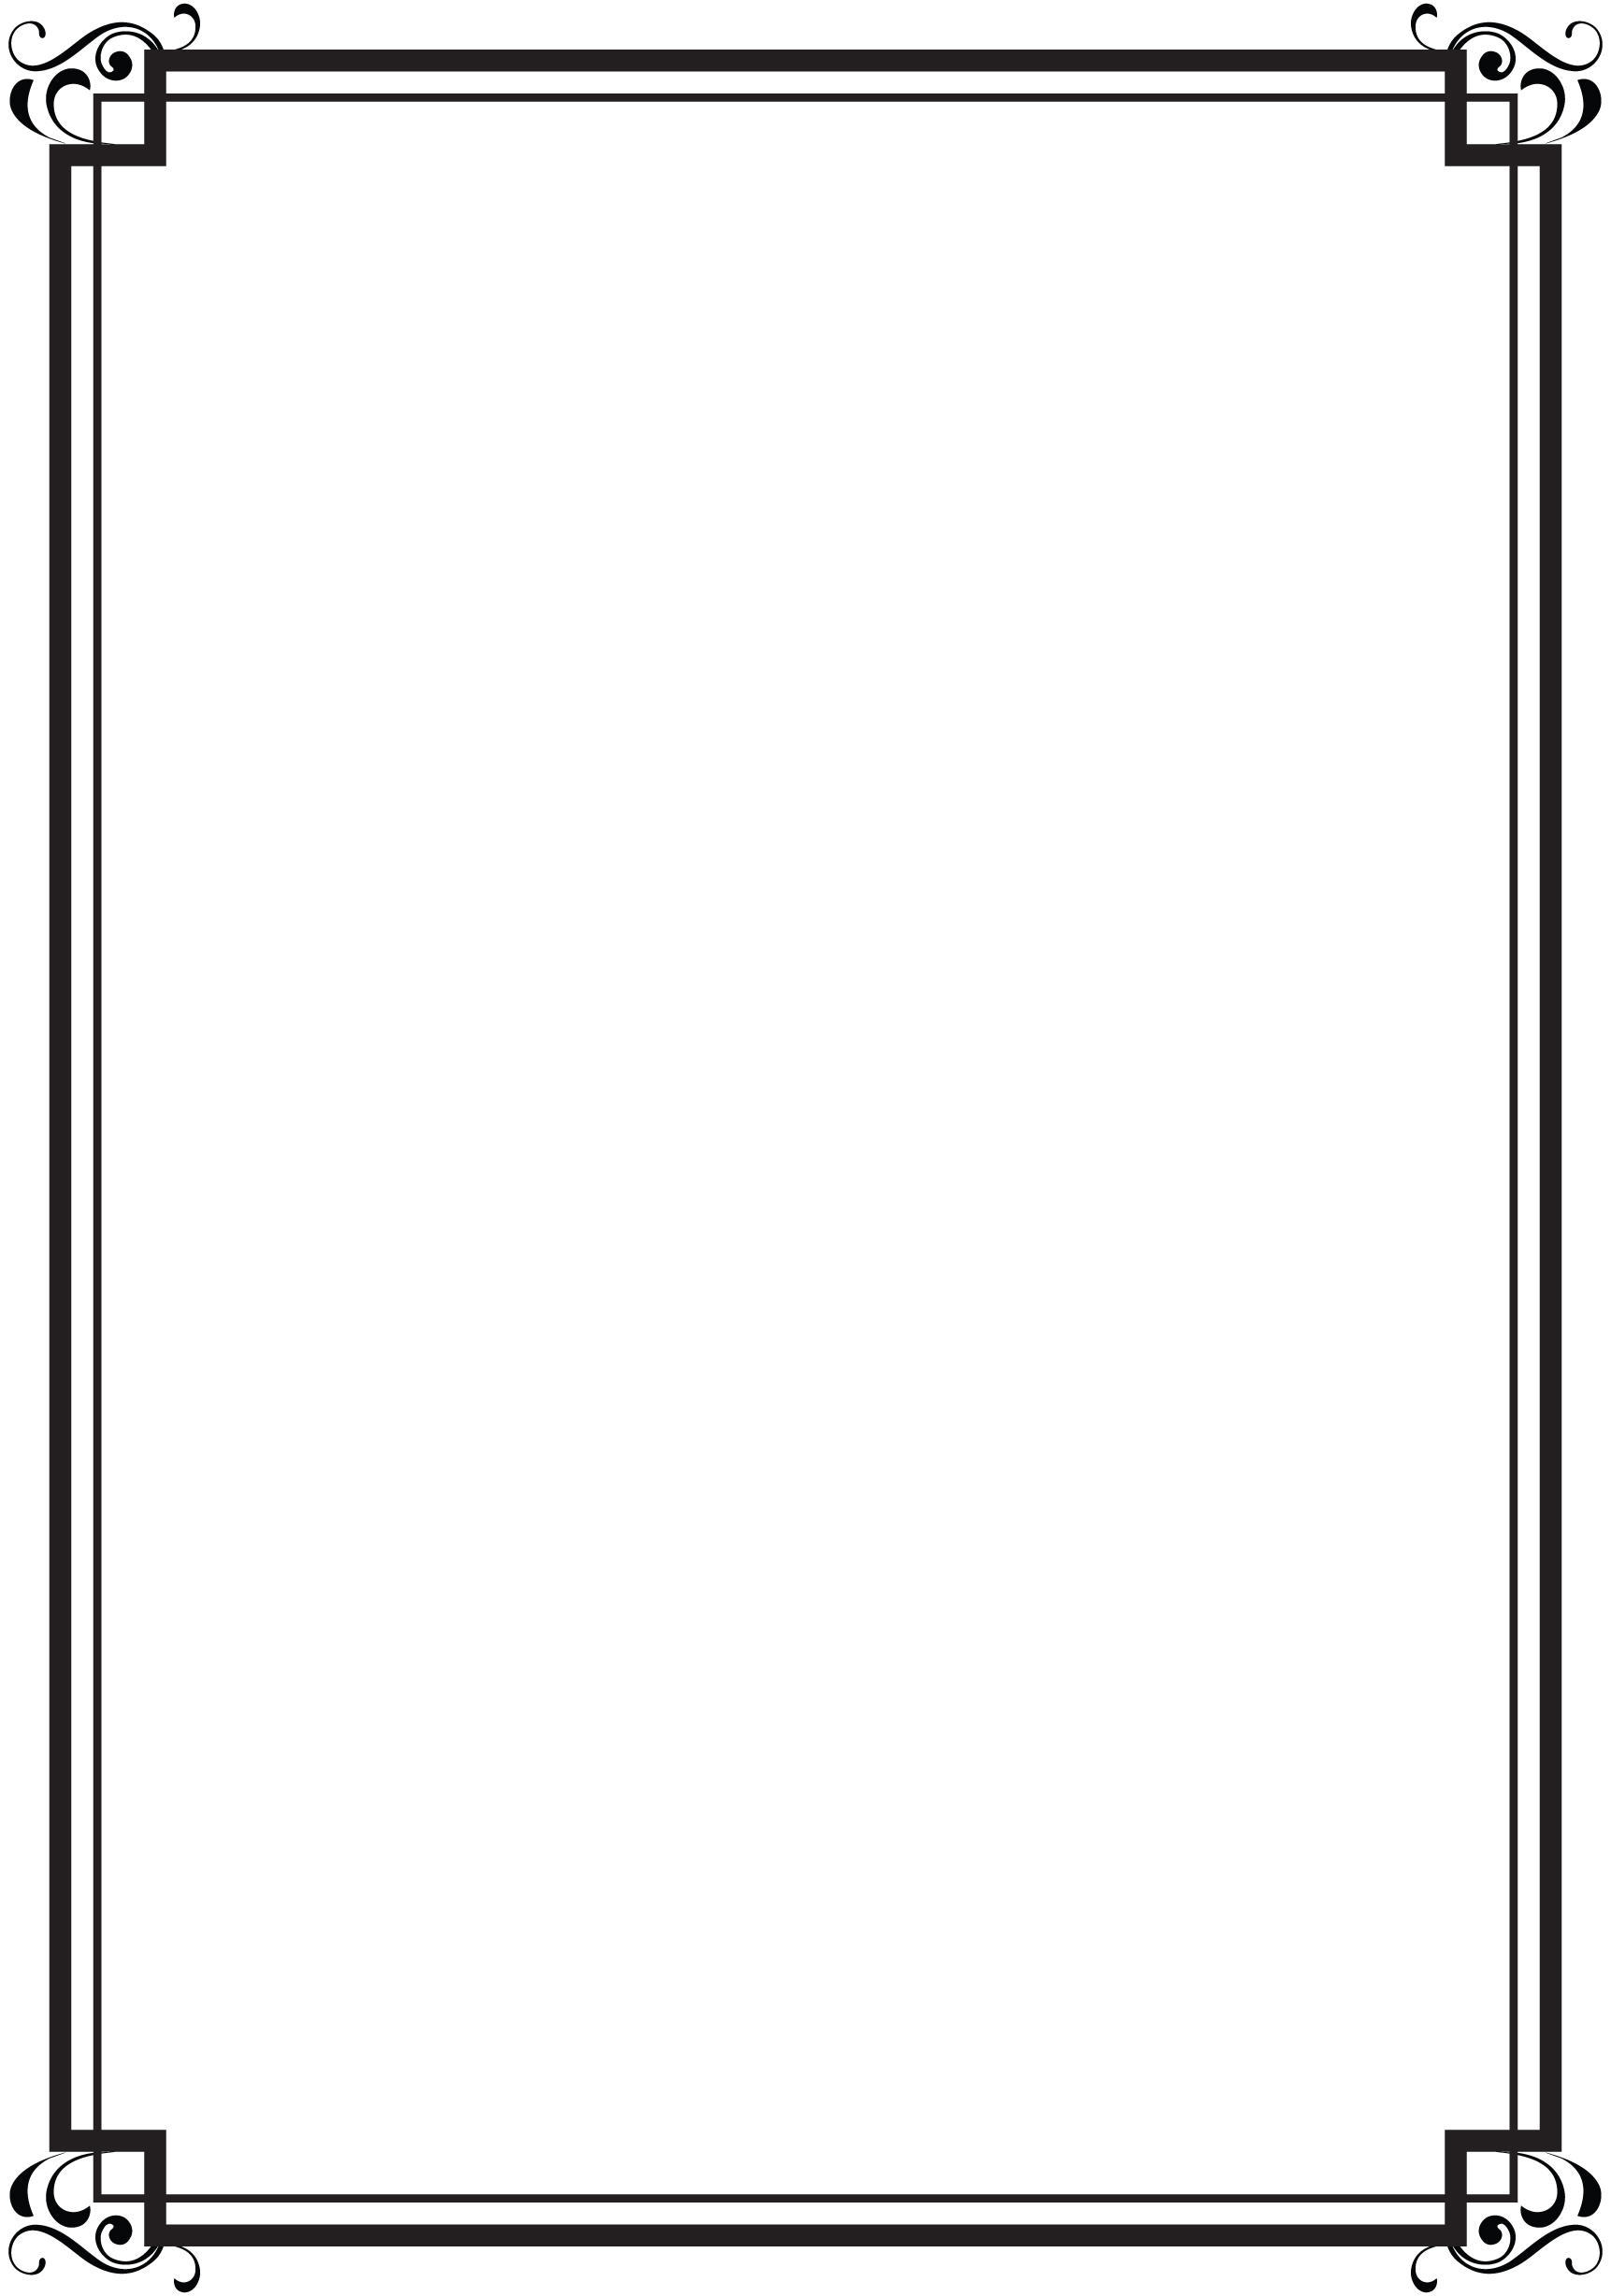 Double Line Border PNG - 151995